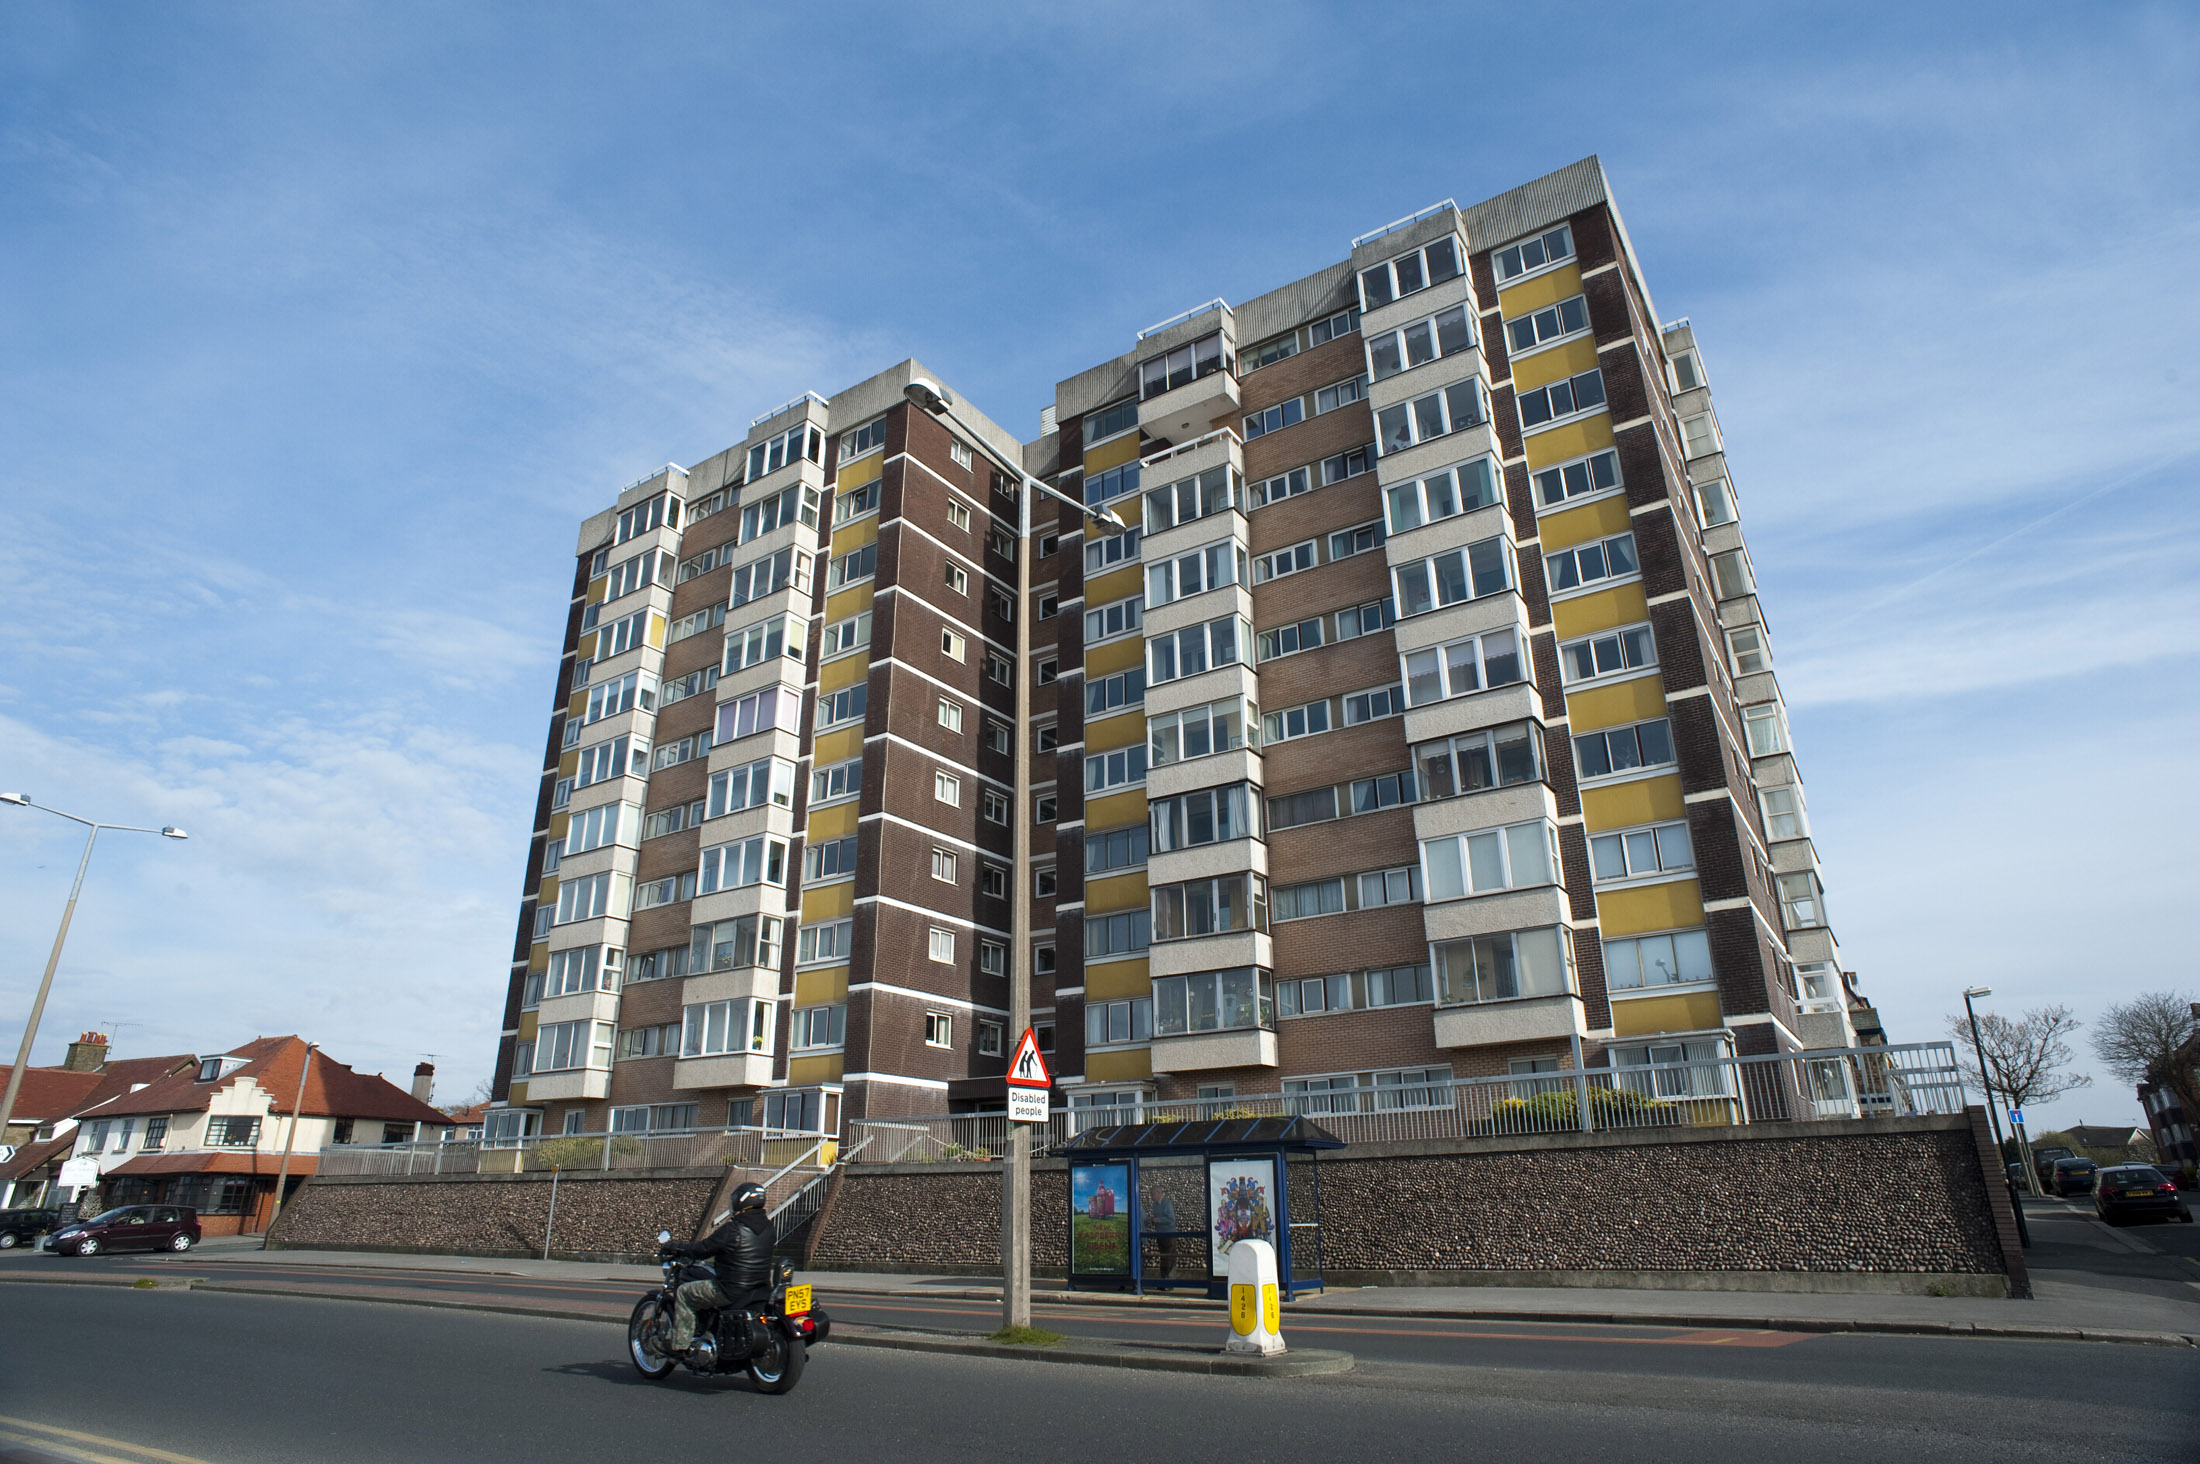 a block of flats of morcambe seafront